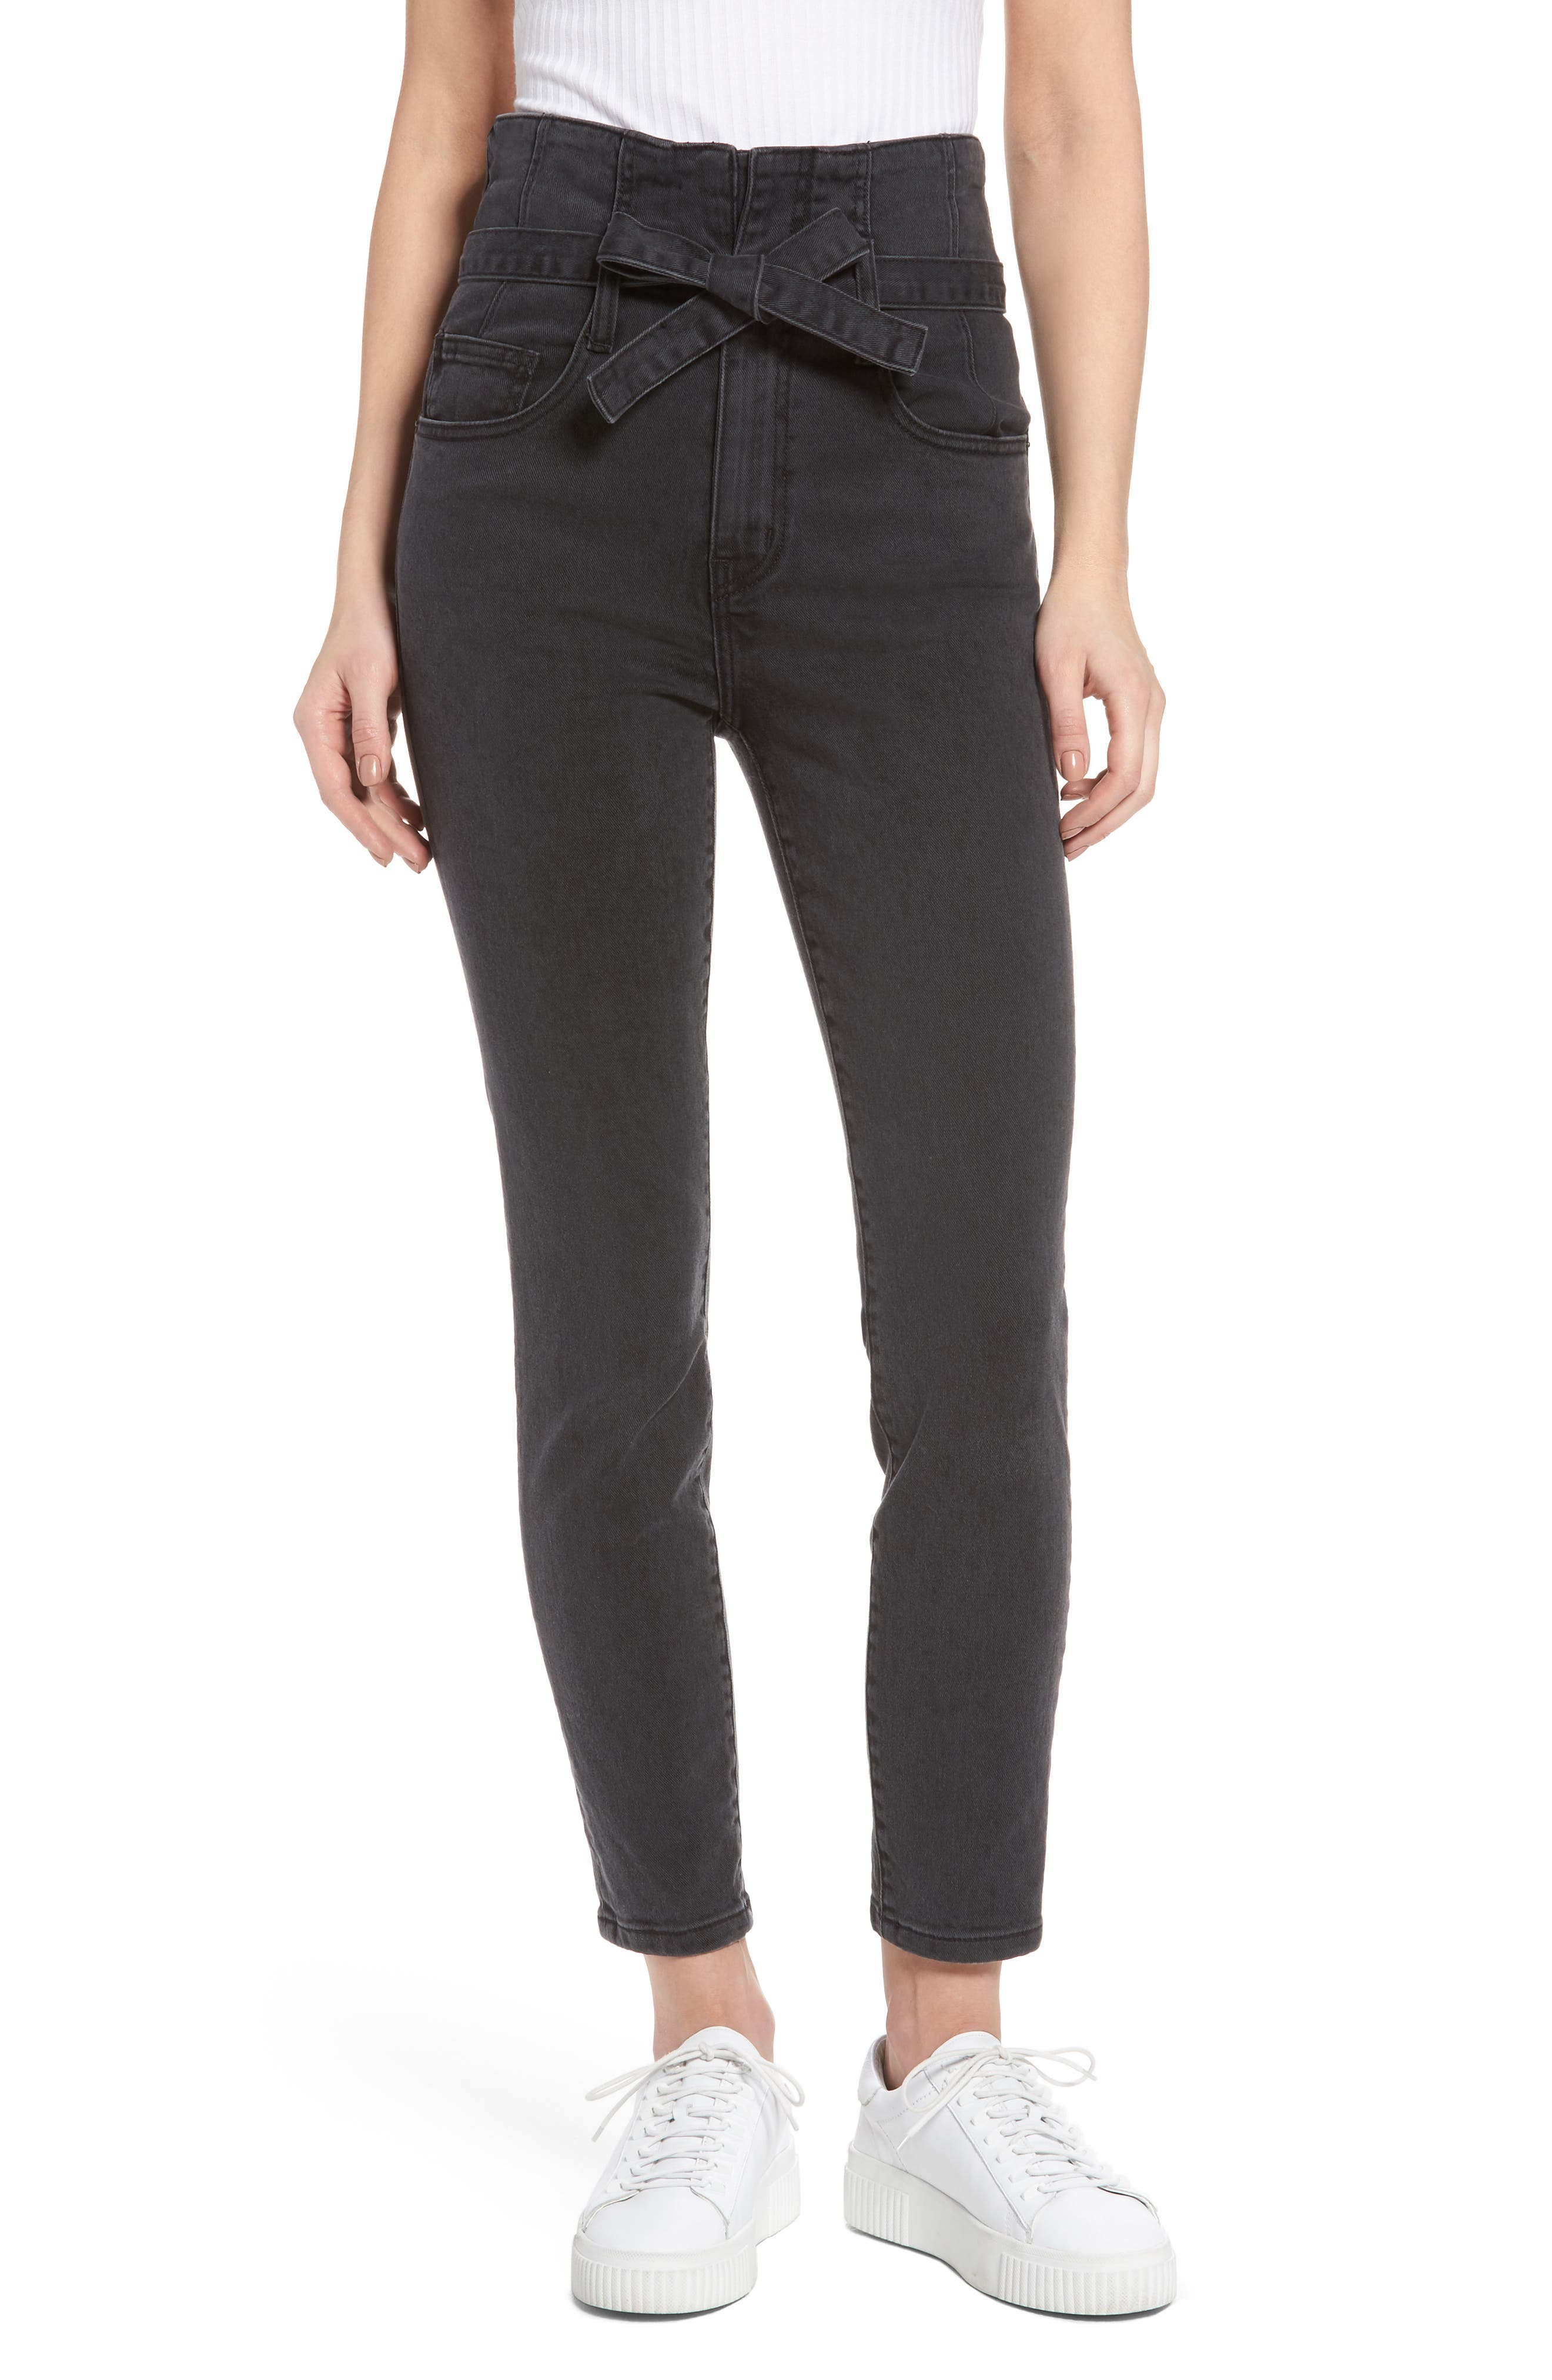 Main Image - Current/Elliott Corset Stiletto Ankle Skinny Jeans (Indiana)